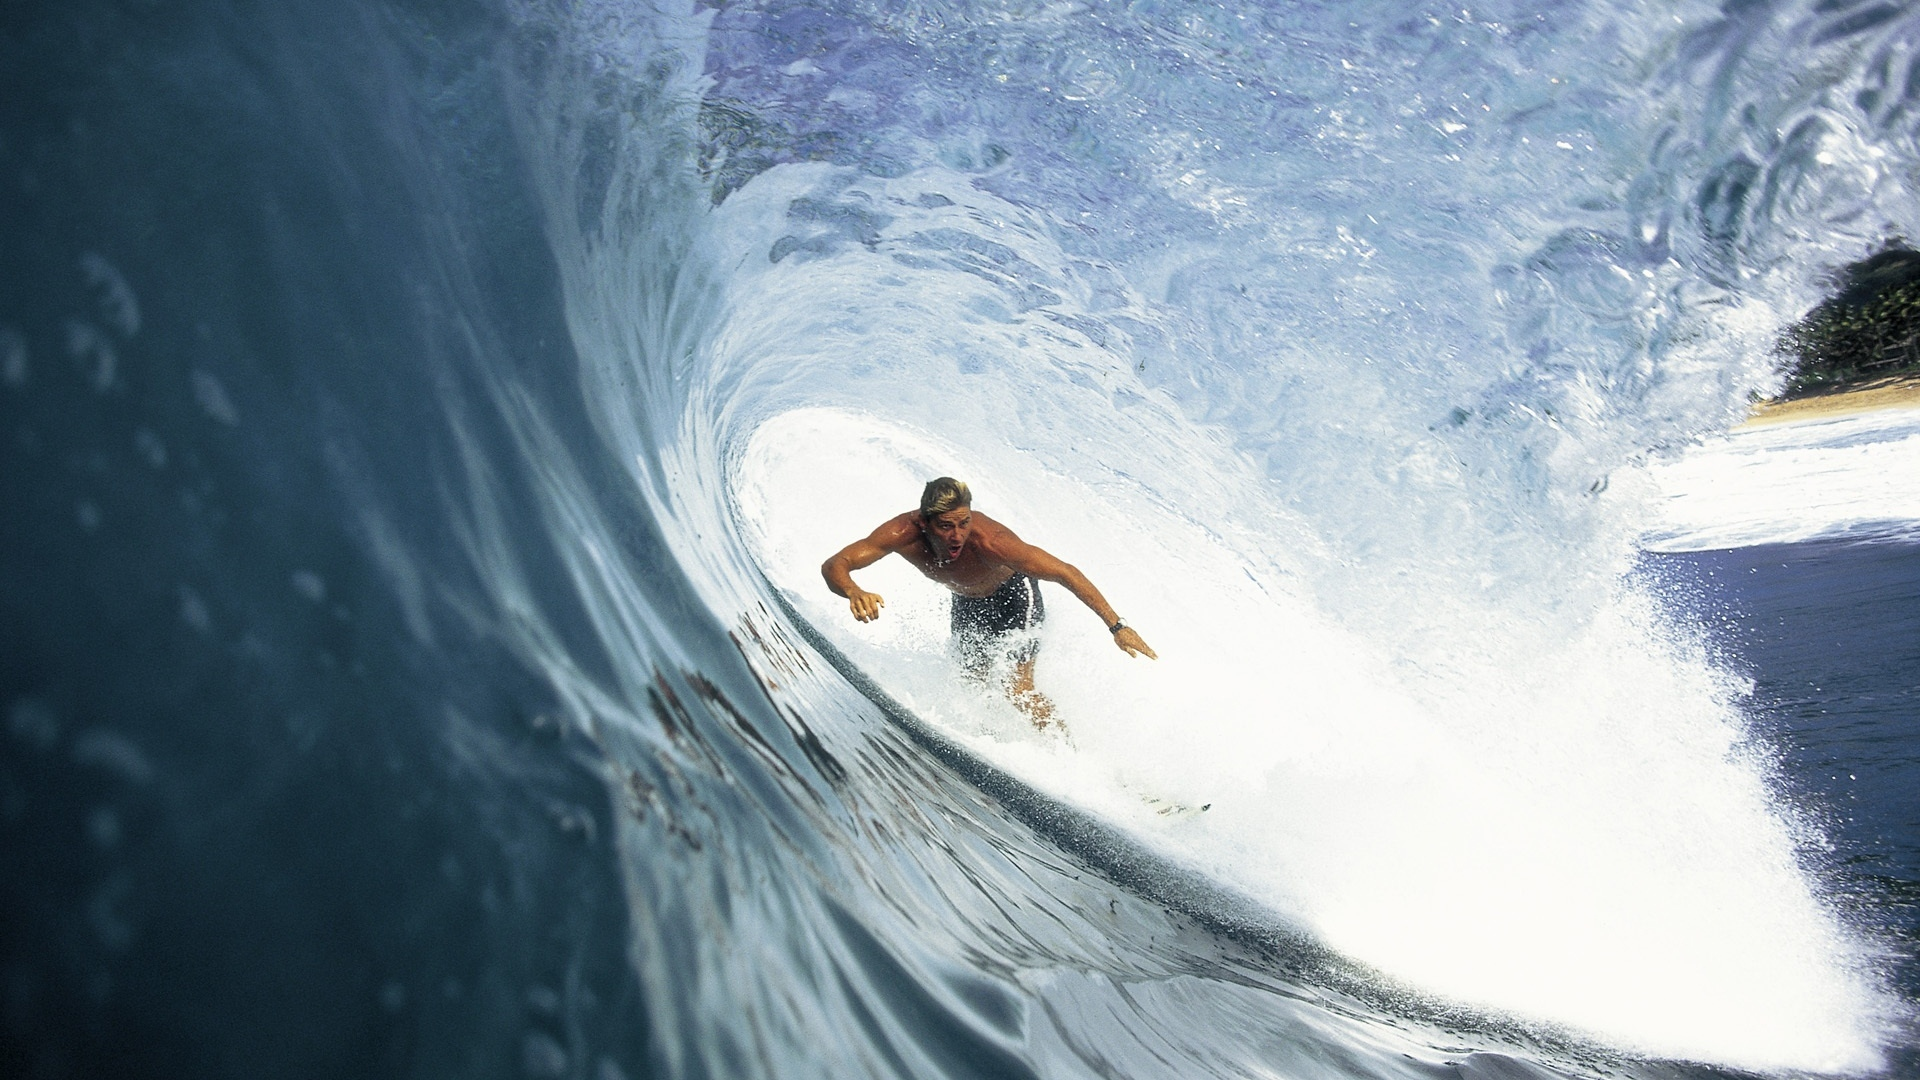 Download Wallpaper 1920x1080 Surfing Wave Extreme Guy